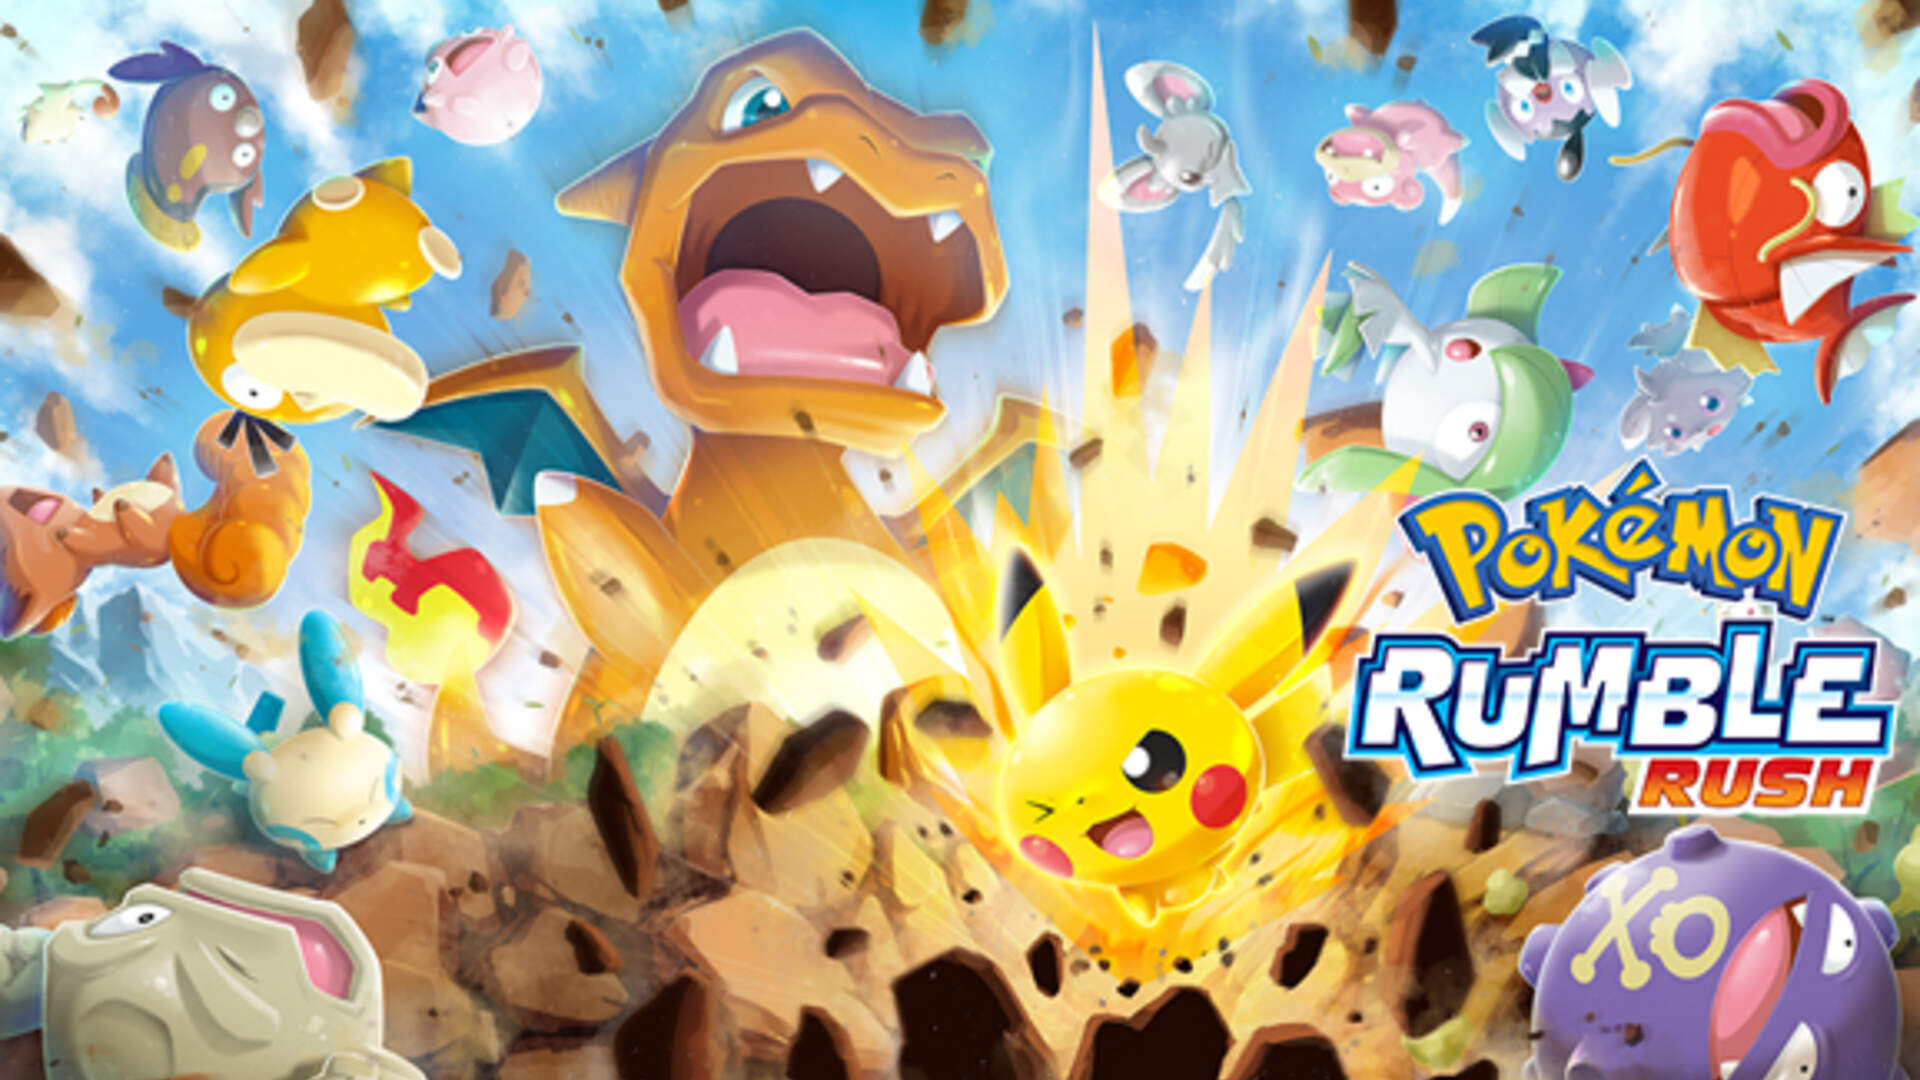 Pokemon Rumble Rush Shiny Pokemon - What Are the Sparkling Pokemon?